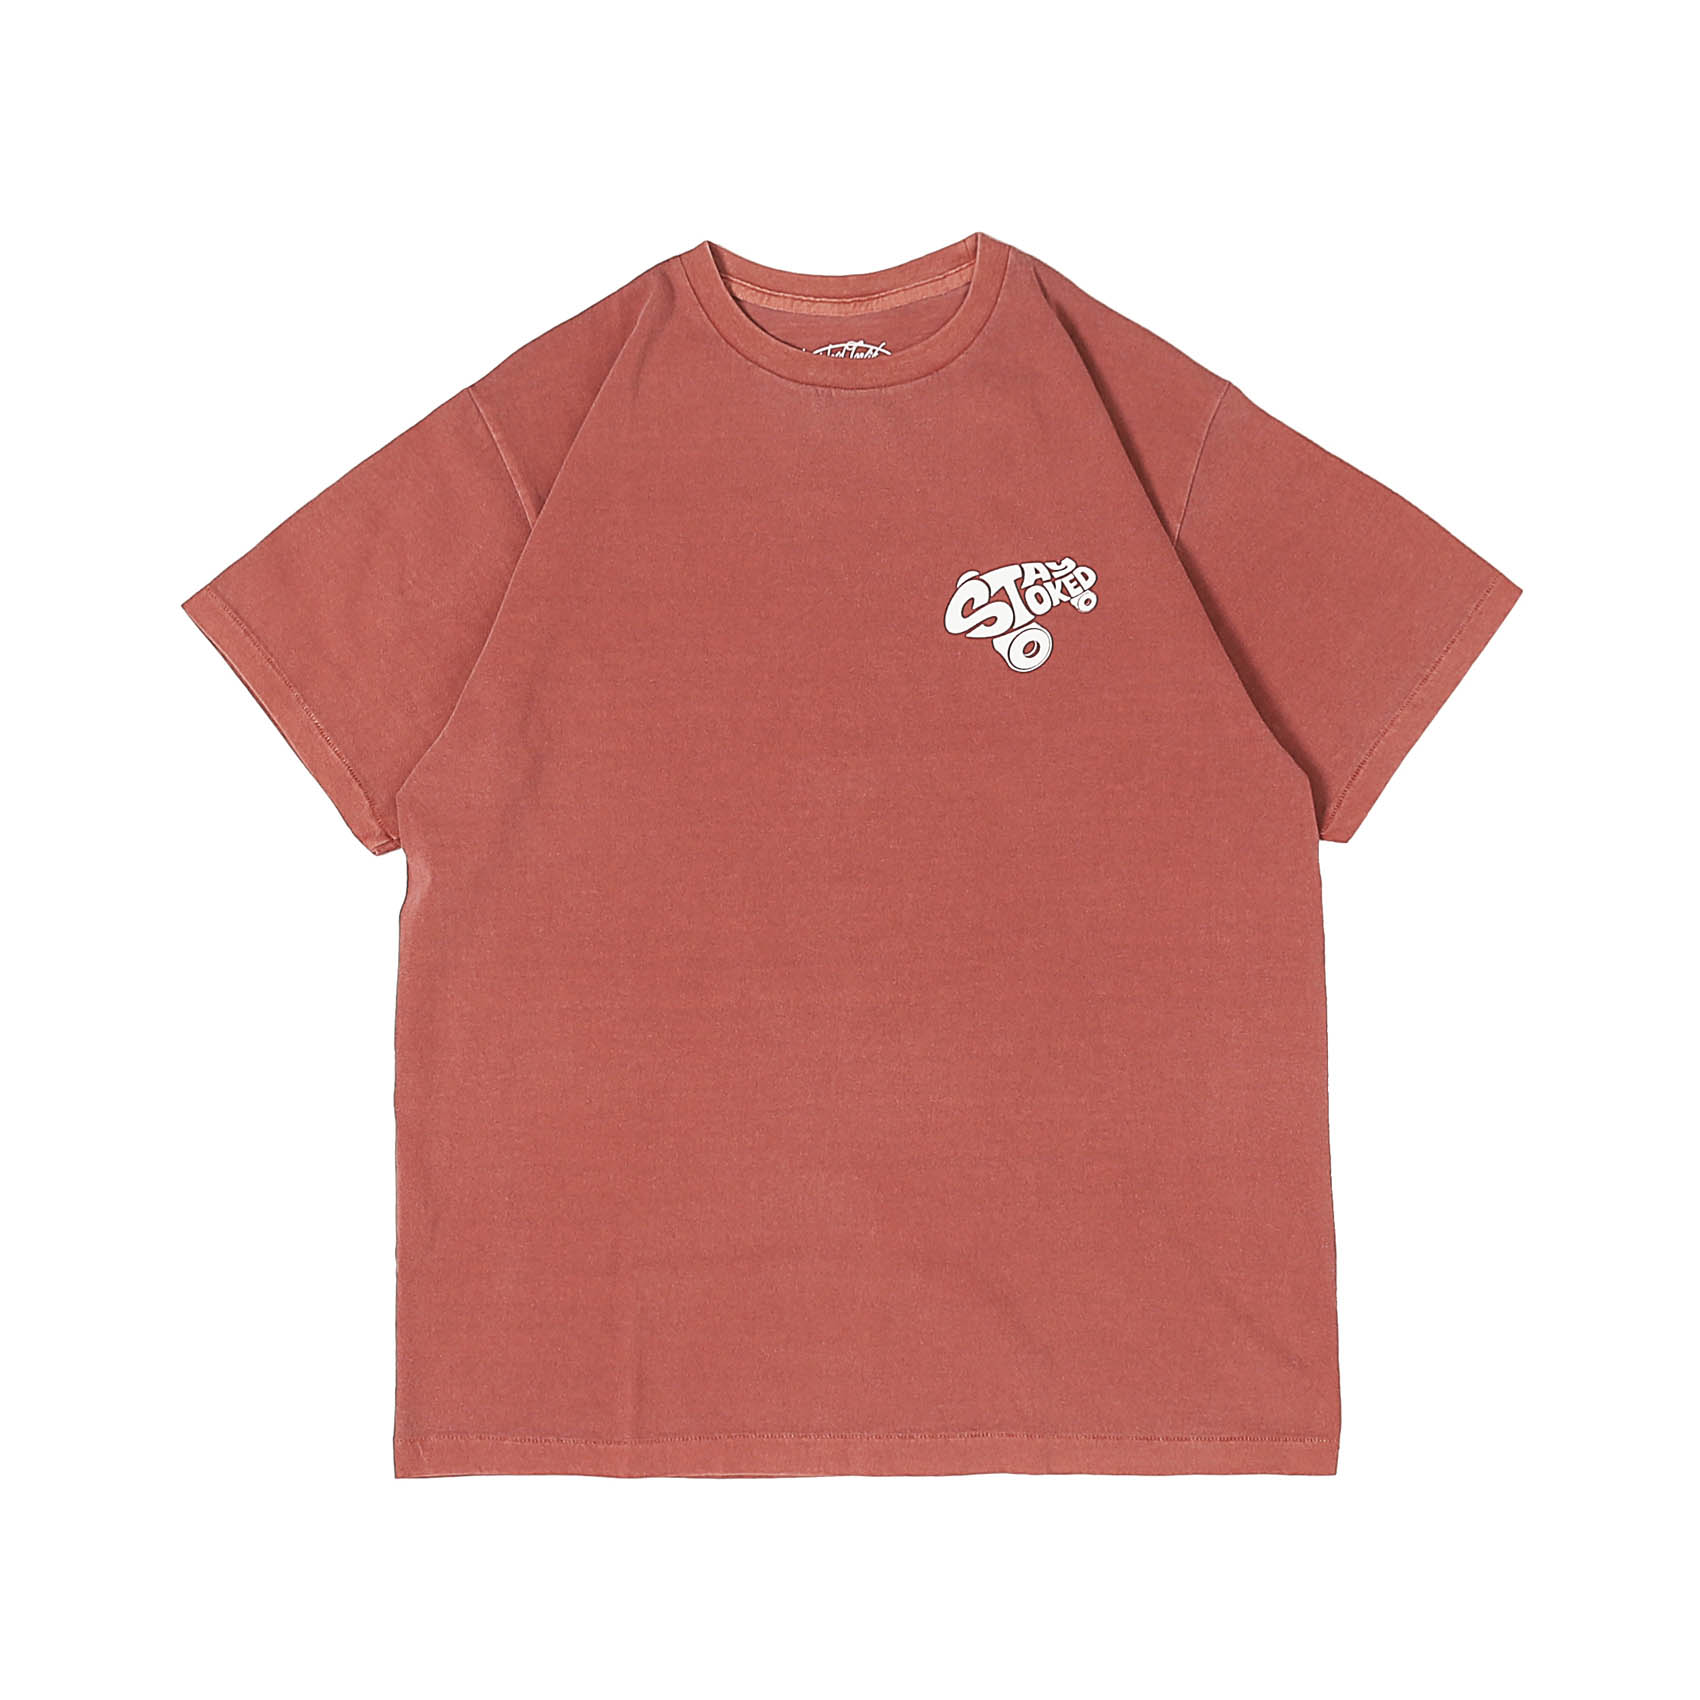 STAY STOKED TEE - RED